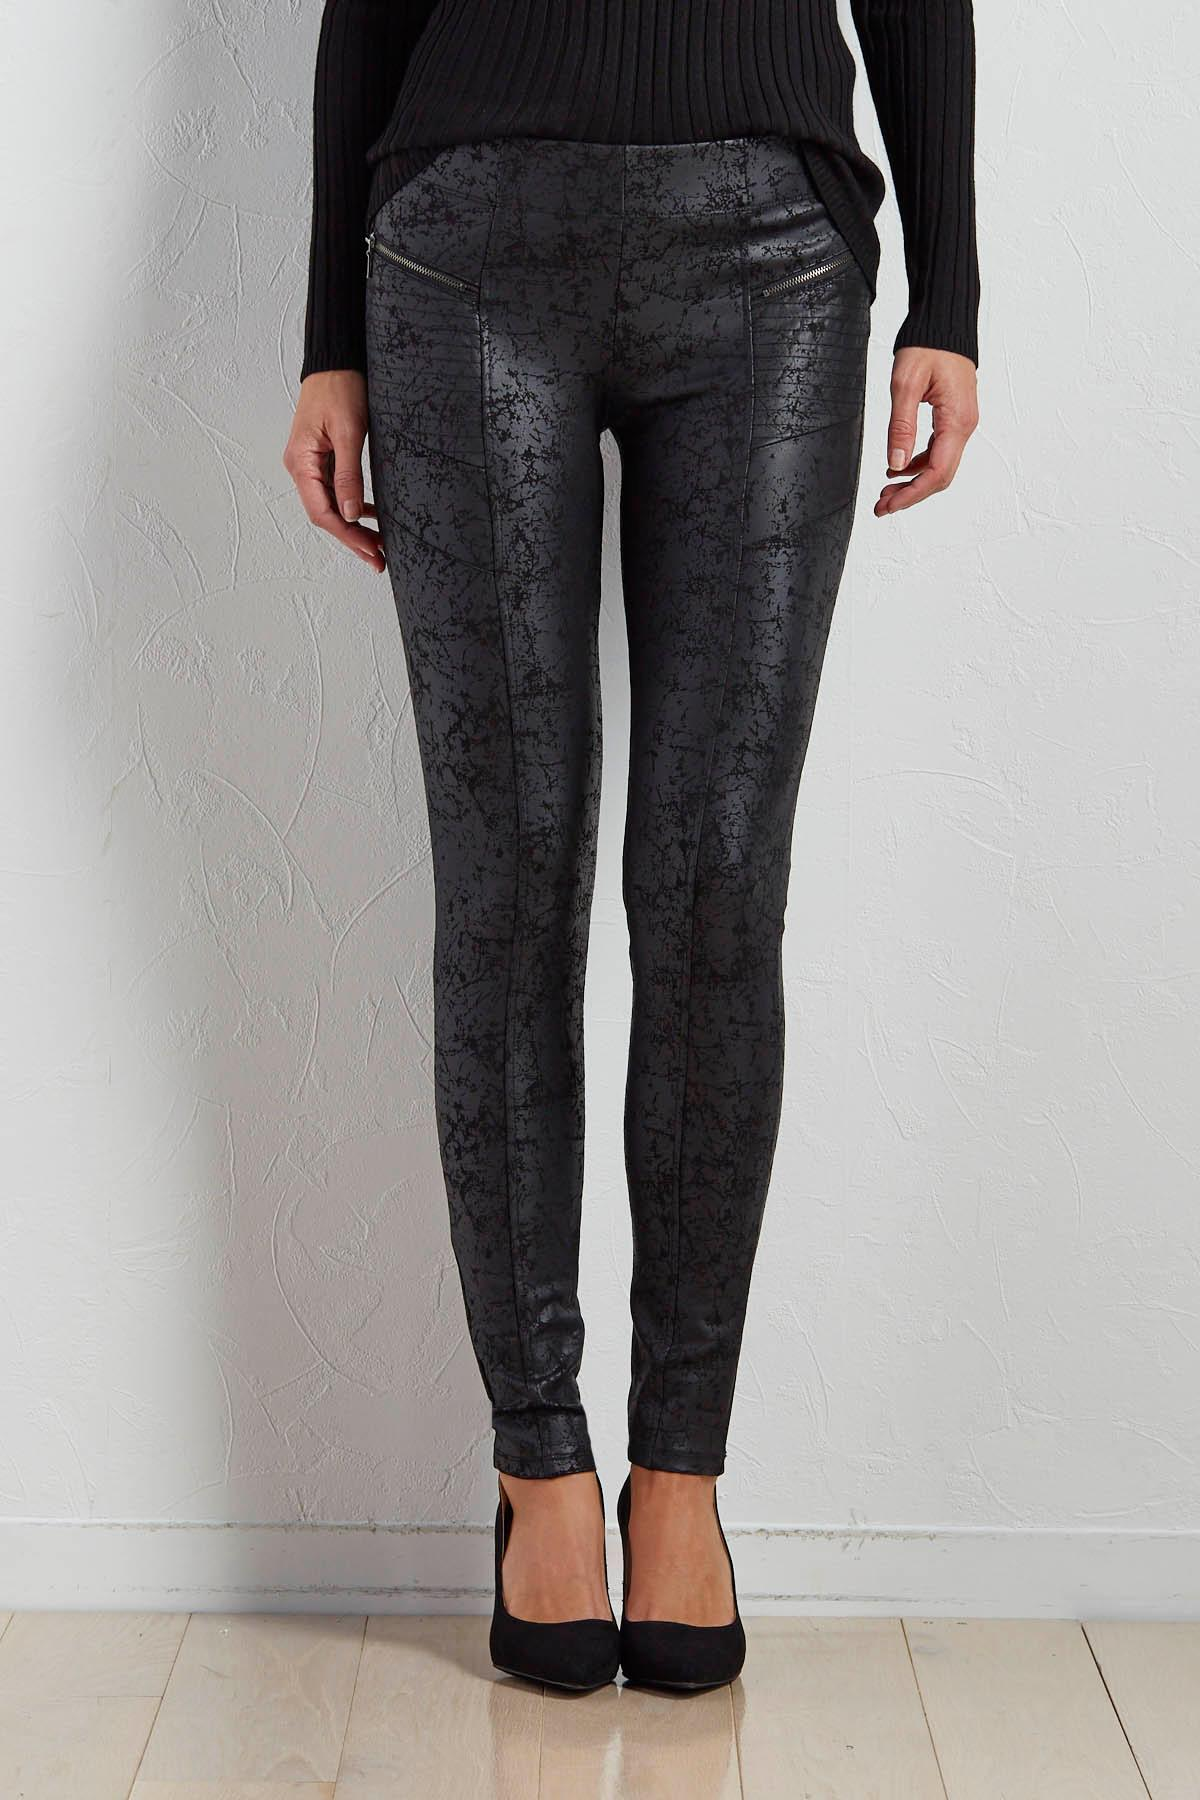 Crackle Moto Ponte Leggings